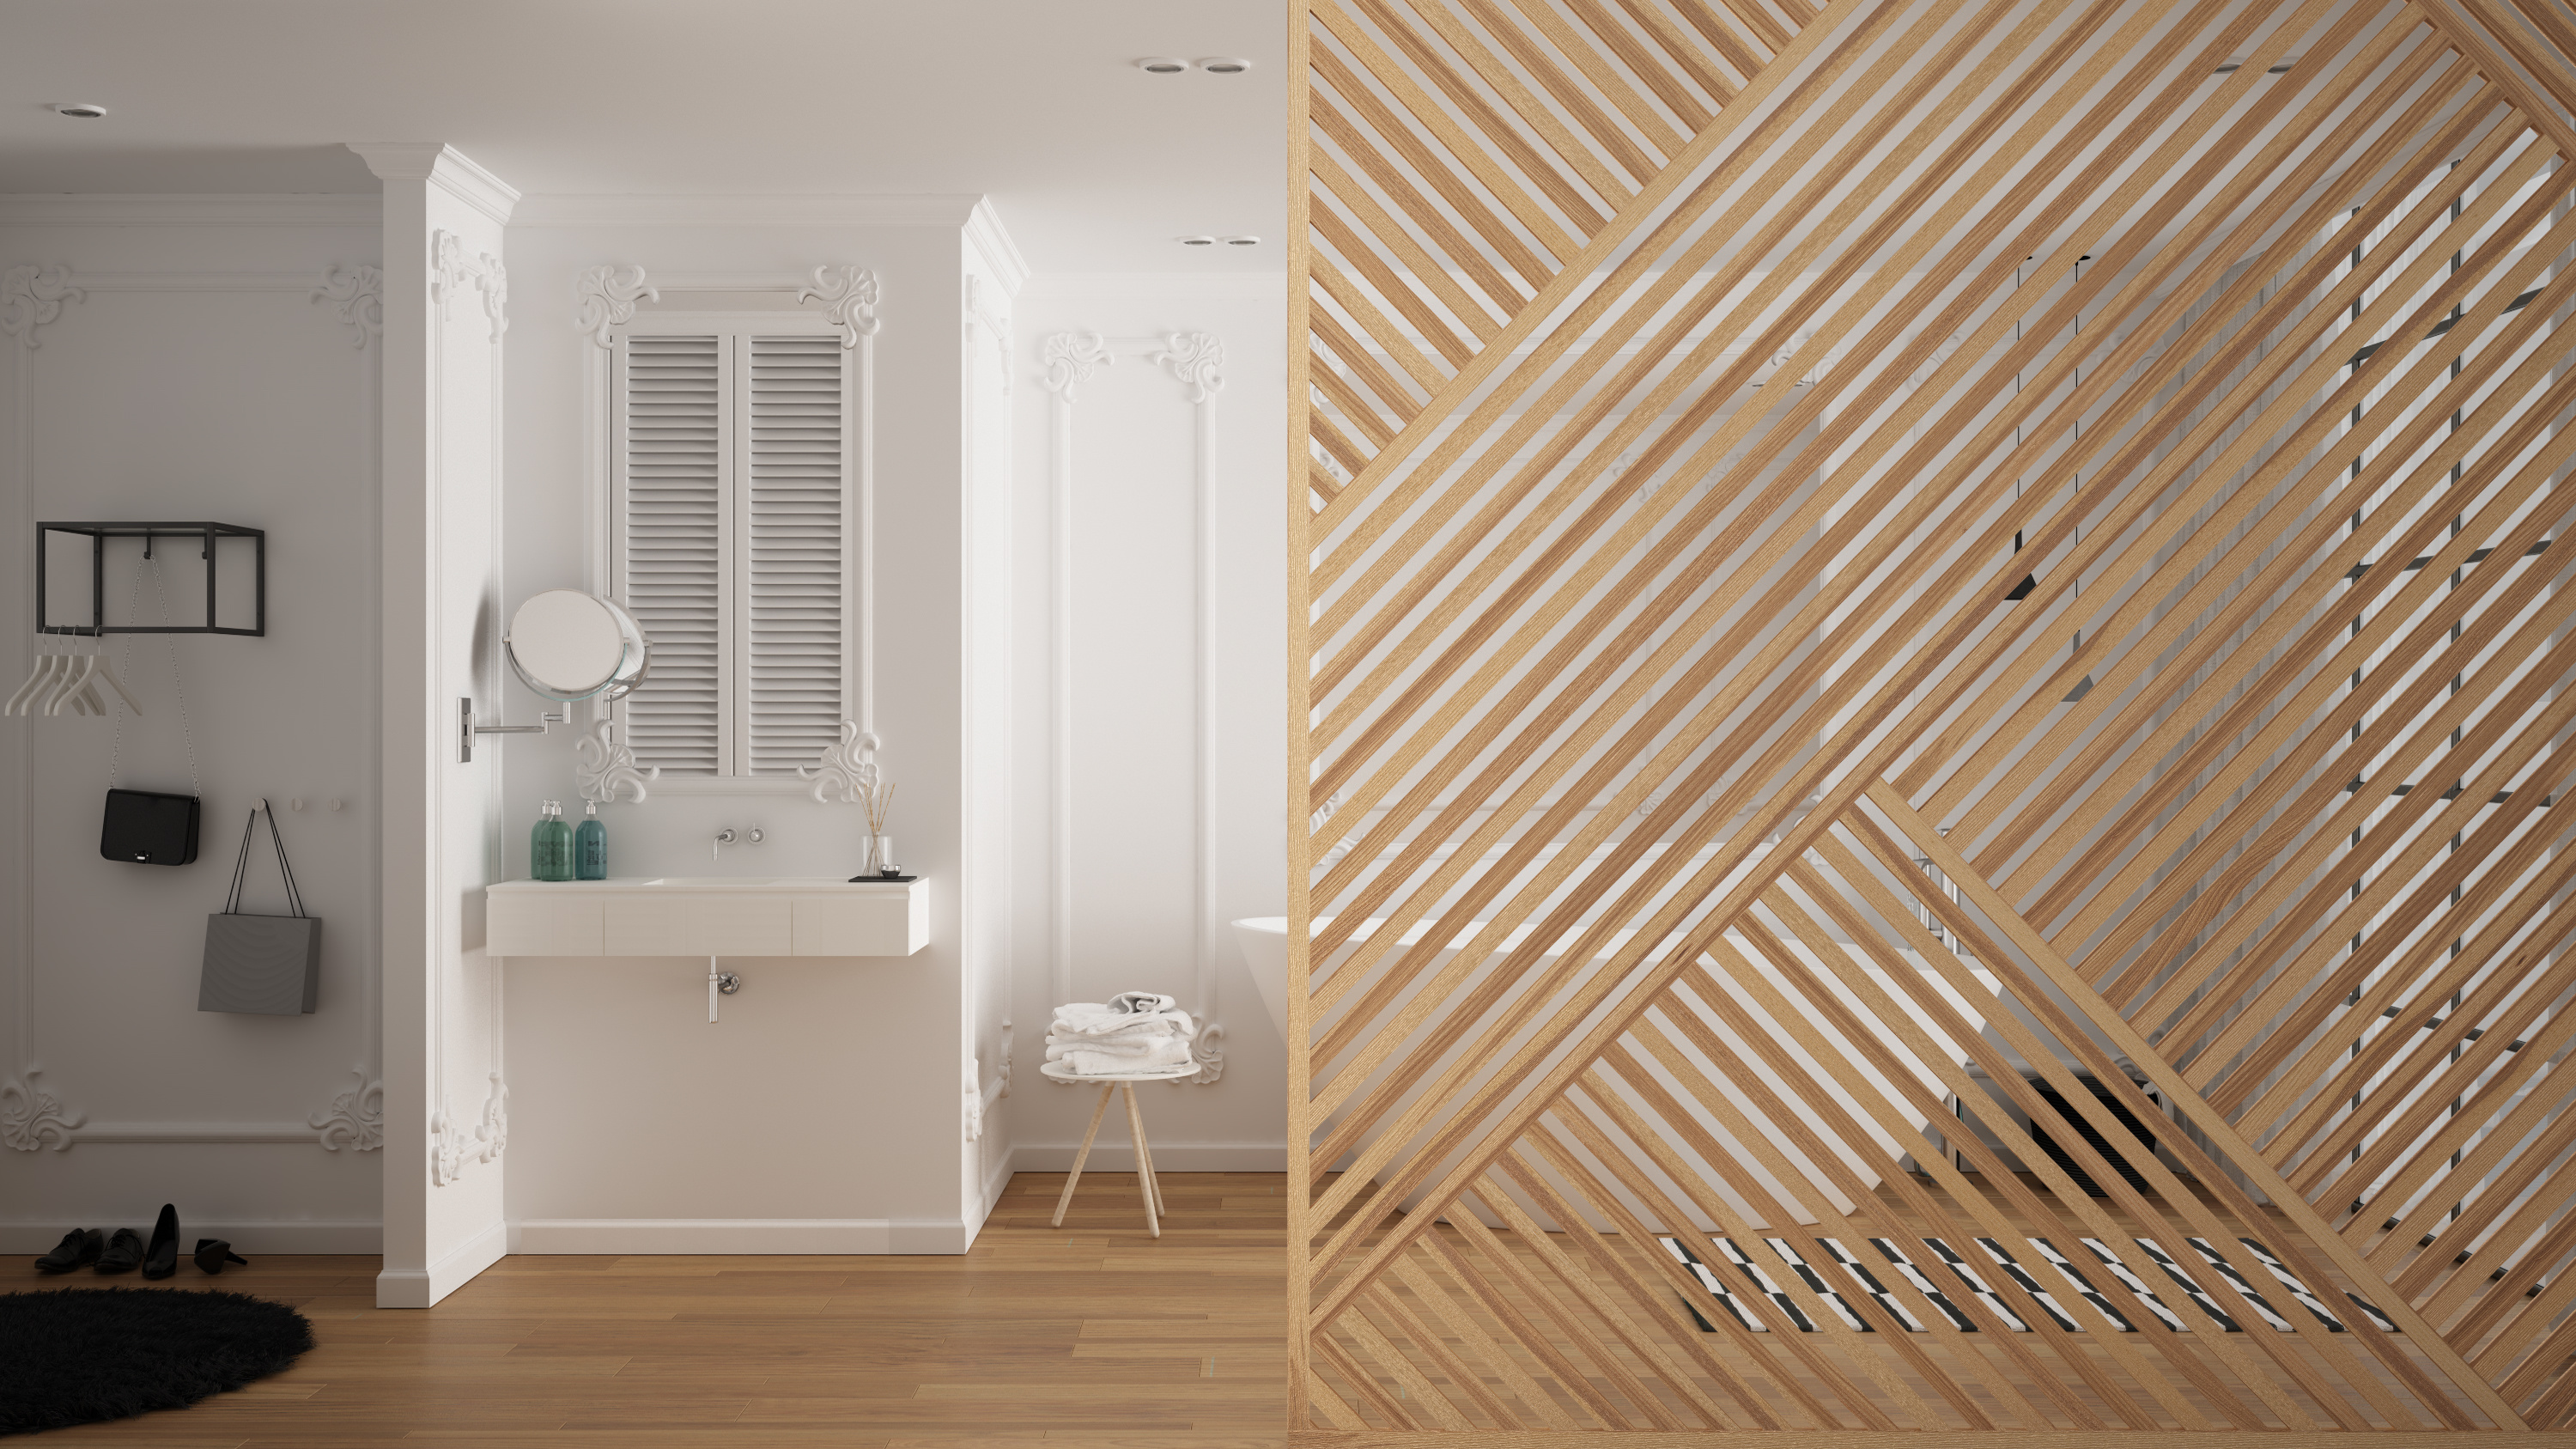 Plyco's interior wall cladding used for a creative bathroom feature wall